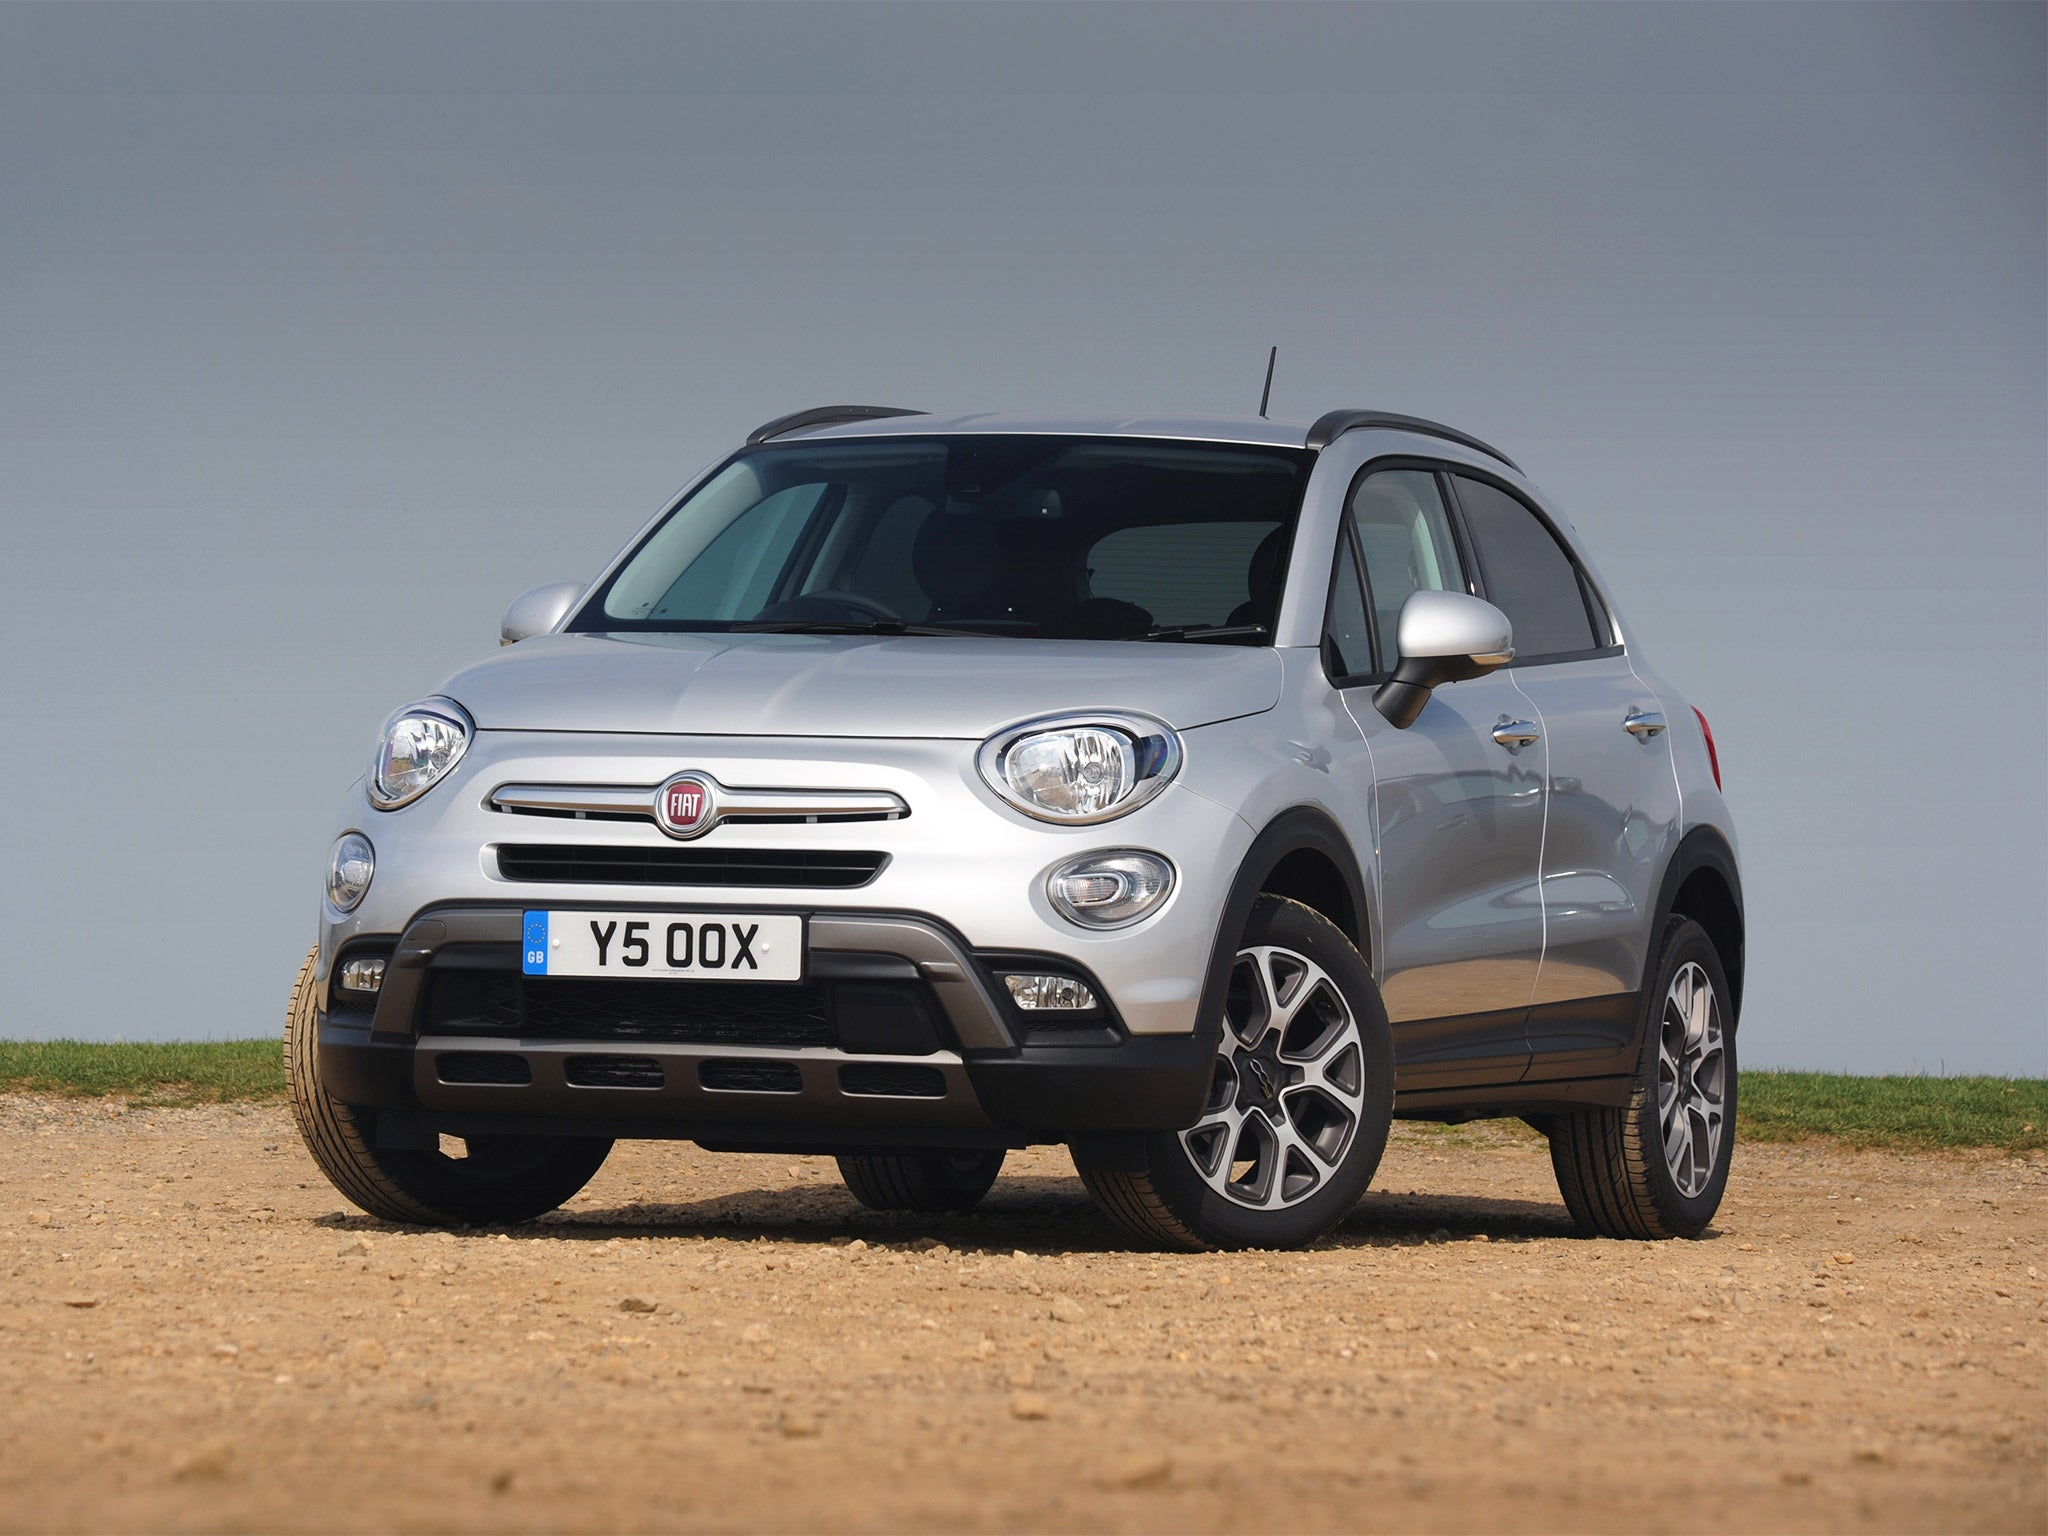 fiat 500x multiair lounge motoring review retro style may appeal but unreliability will. Black Bedroom Furniture Sets. Home Design Ideas